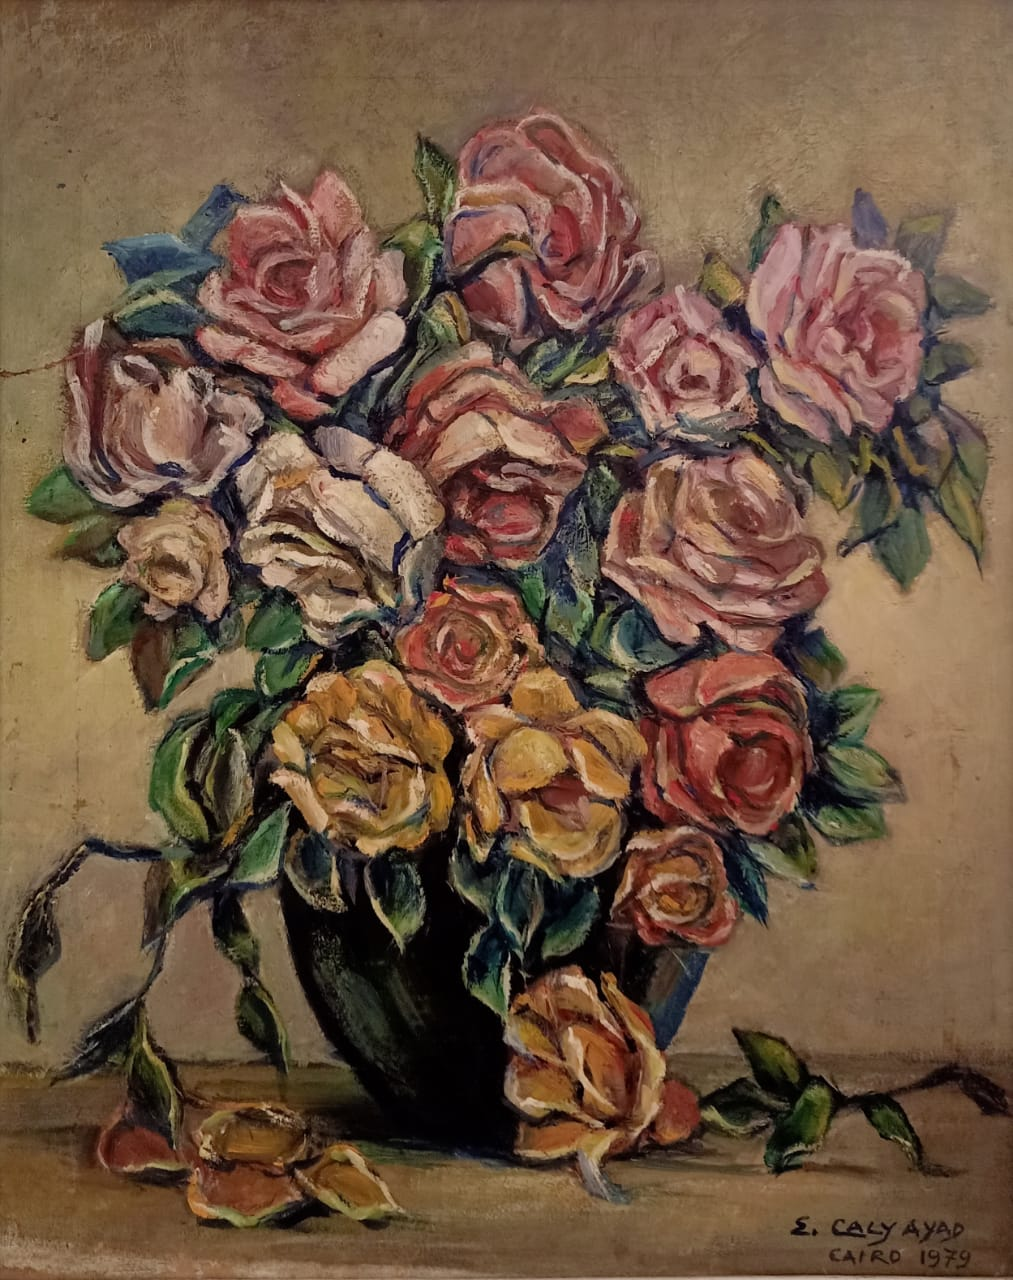 Emma Caly-Ayad, Vase de Fleurs 1979 Oil on canvas 55  x 43 cm Signed and dated bottom right.